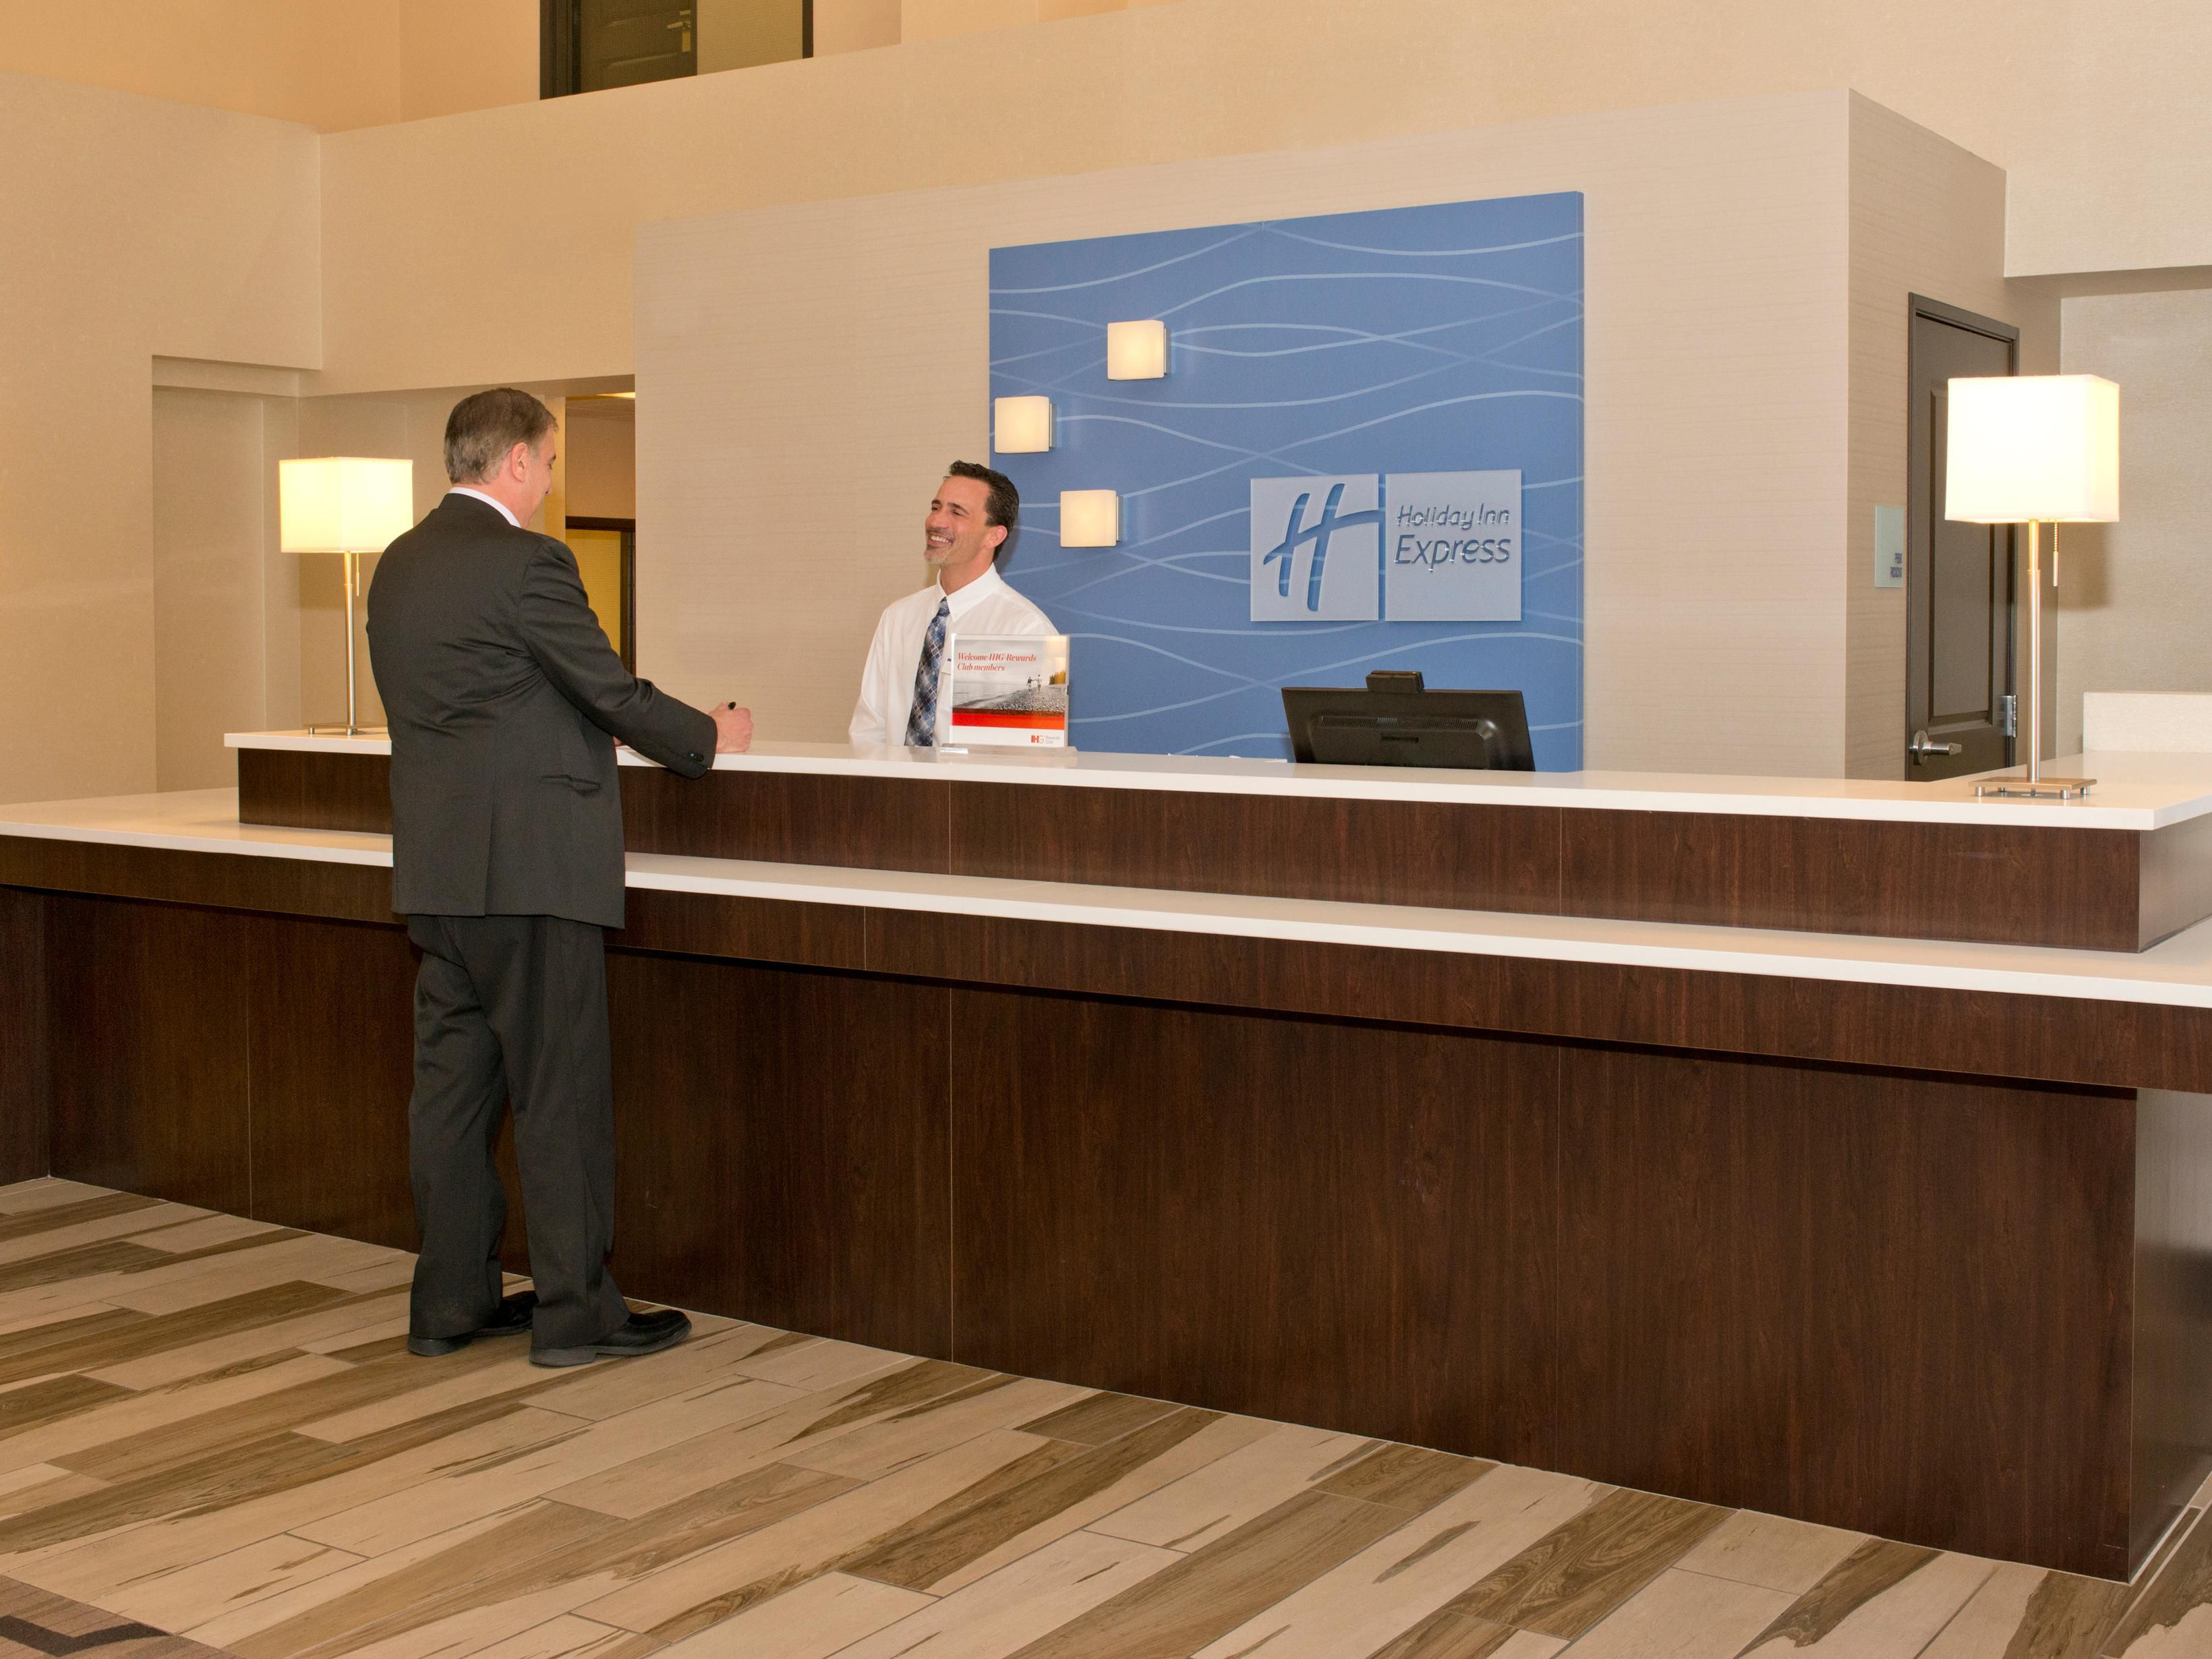 Fast and friendly check-in at our Front Desk